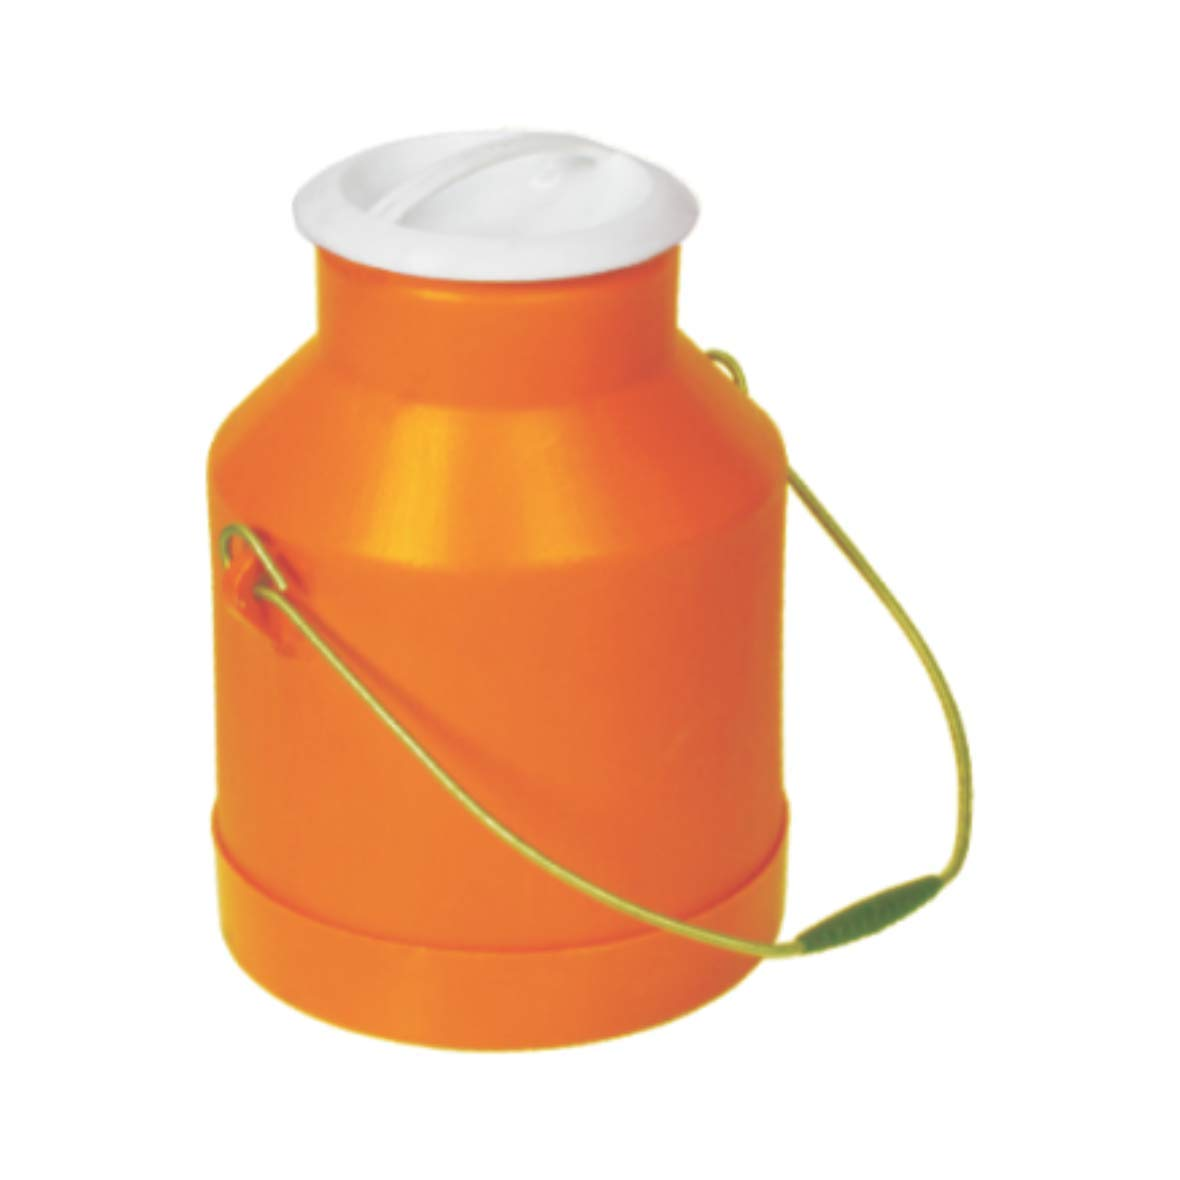 Actionware Plastic Milk Can (10 L, Multicolour)- Buy Online in Pakistan at  desertcart.pk. ProductId : 131630207.